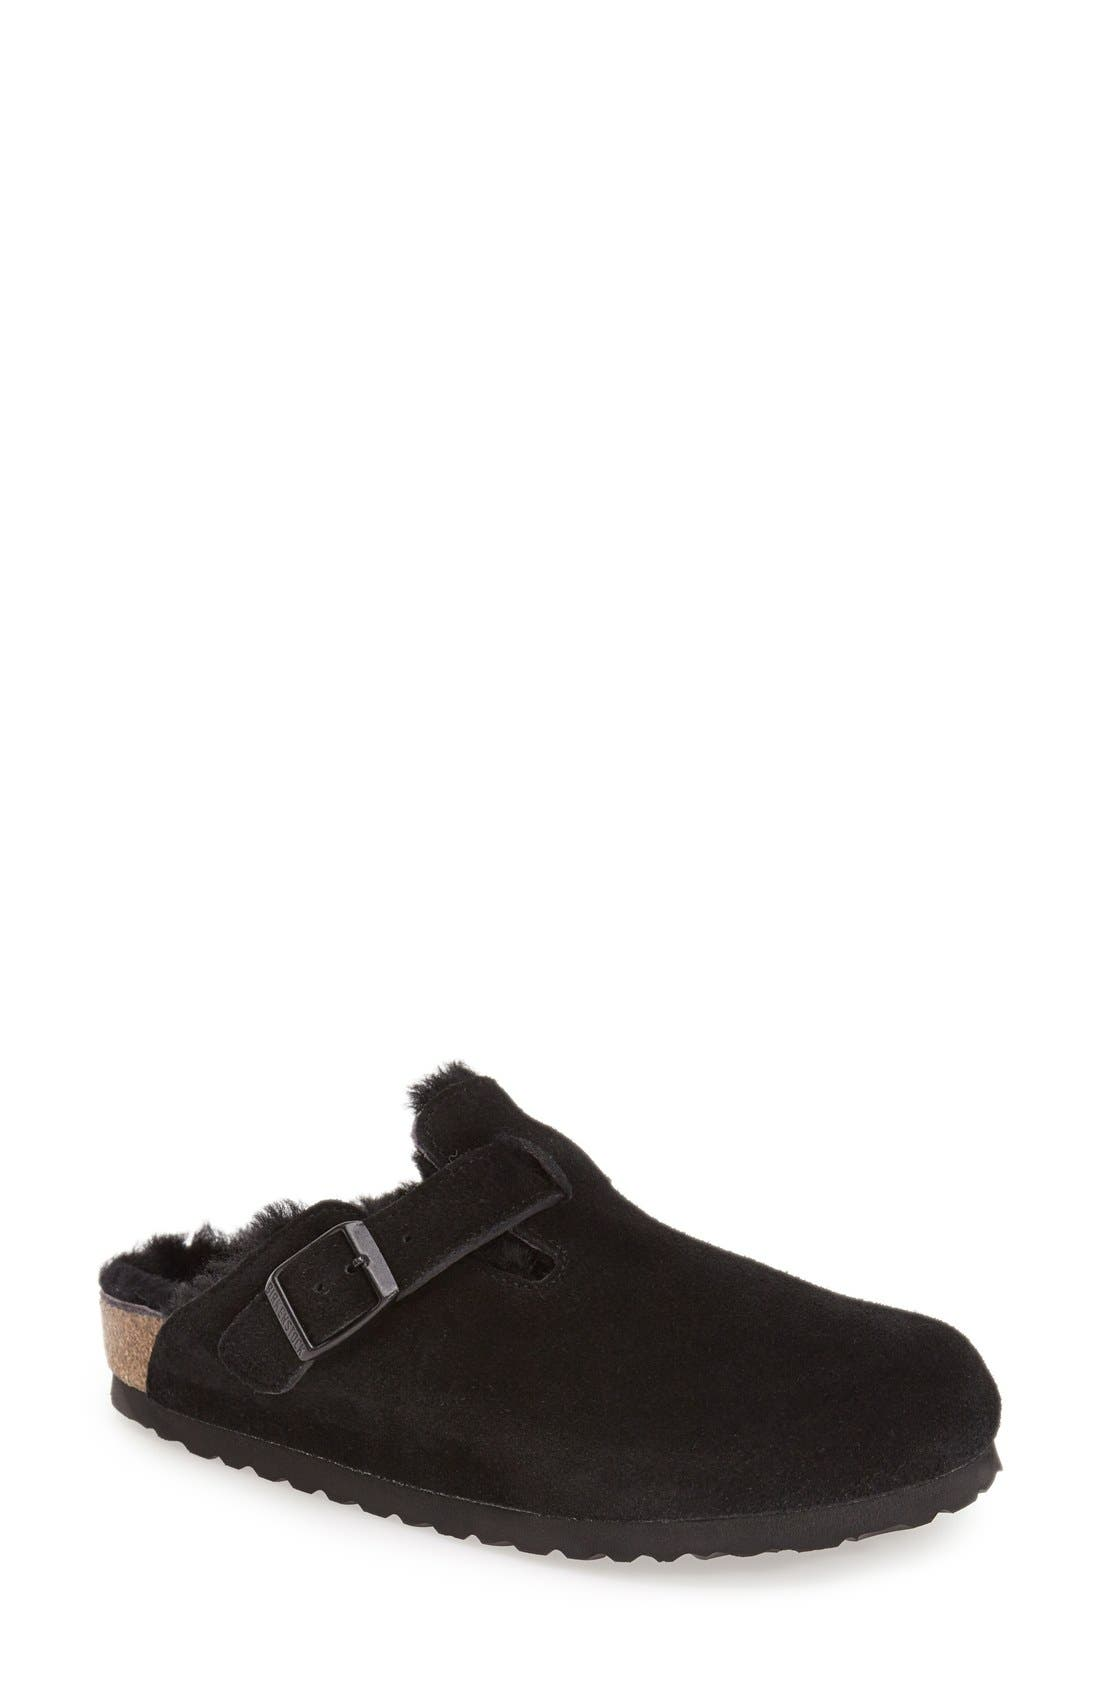 'Boston' Genuine Shearling Lined Clog,                         Main,                         color, Black